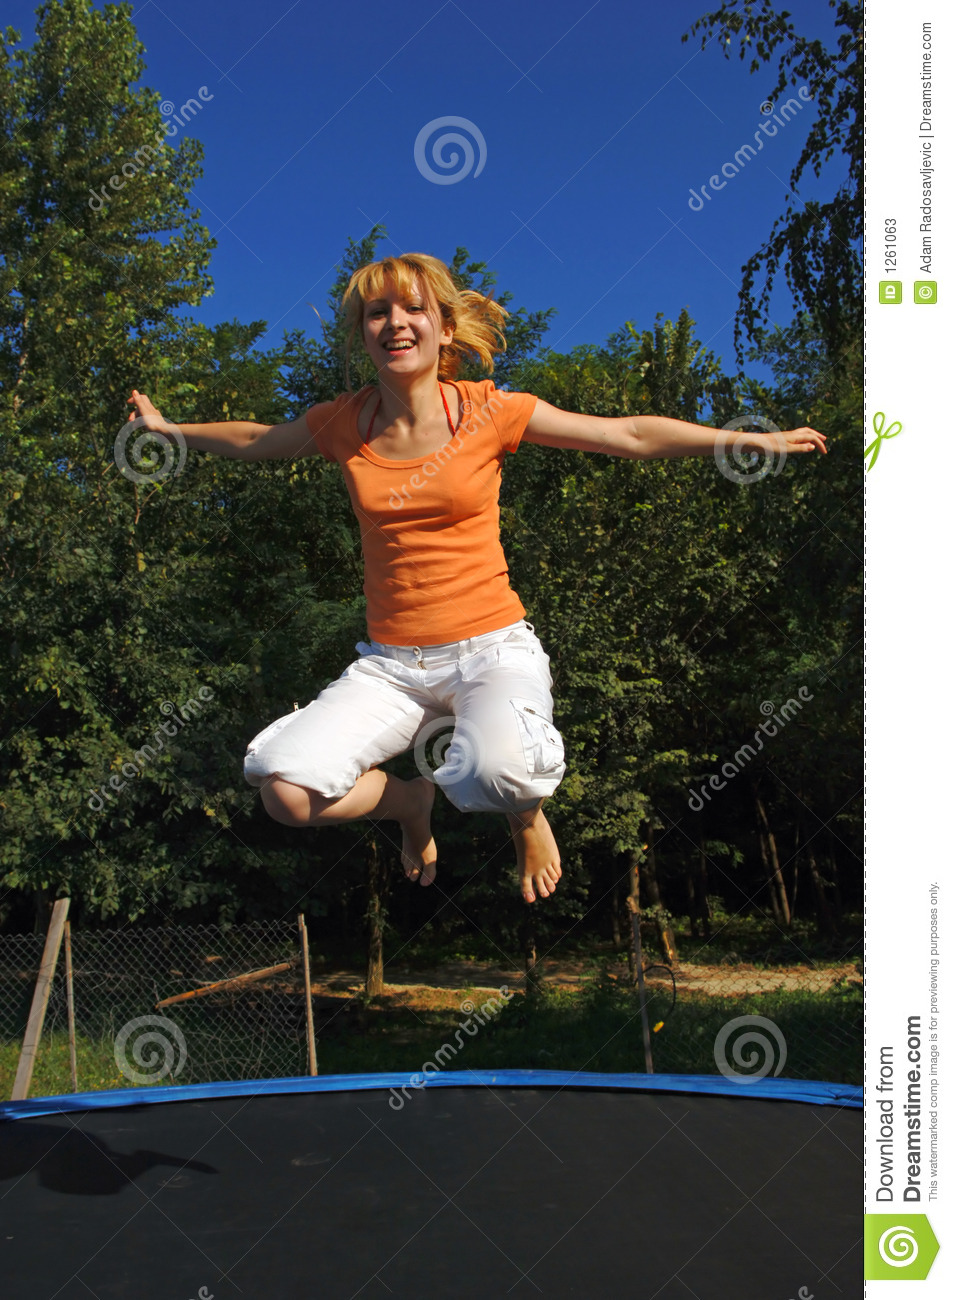 Excited too Chubby girl on trampoline naked seems